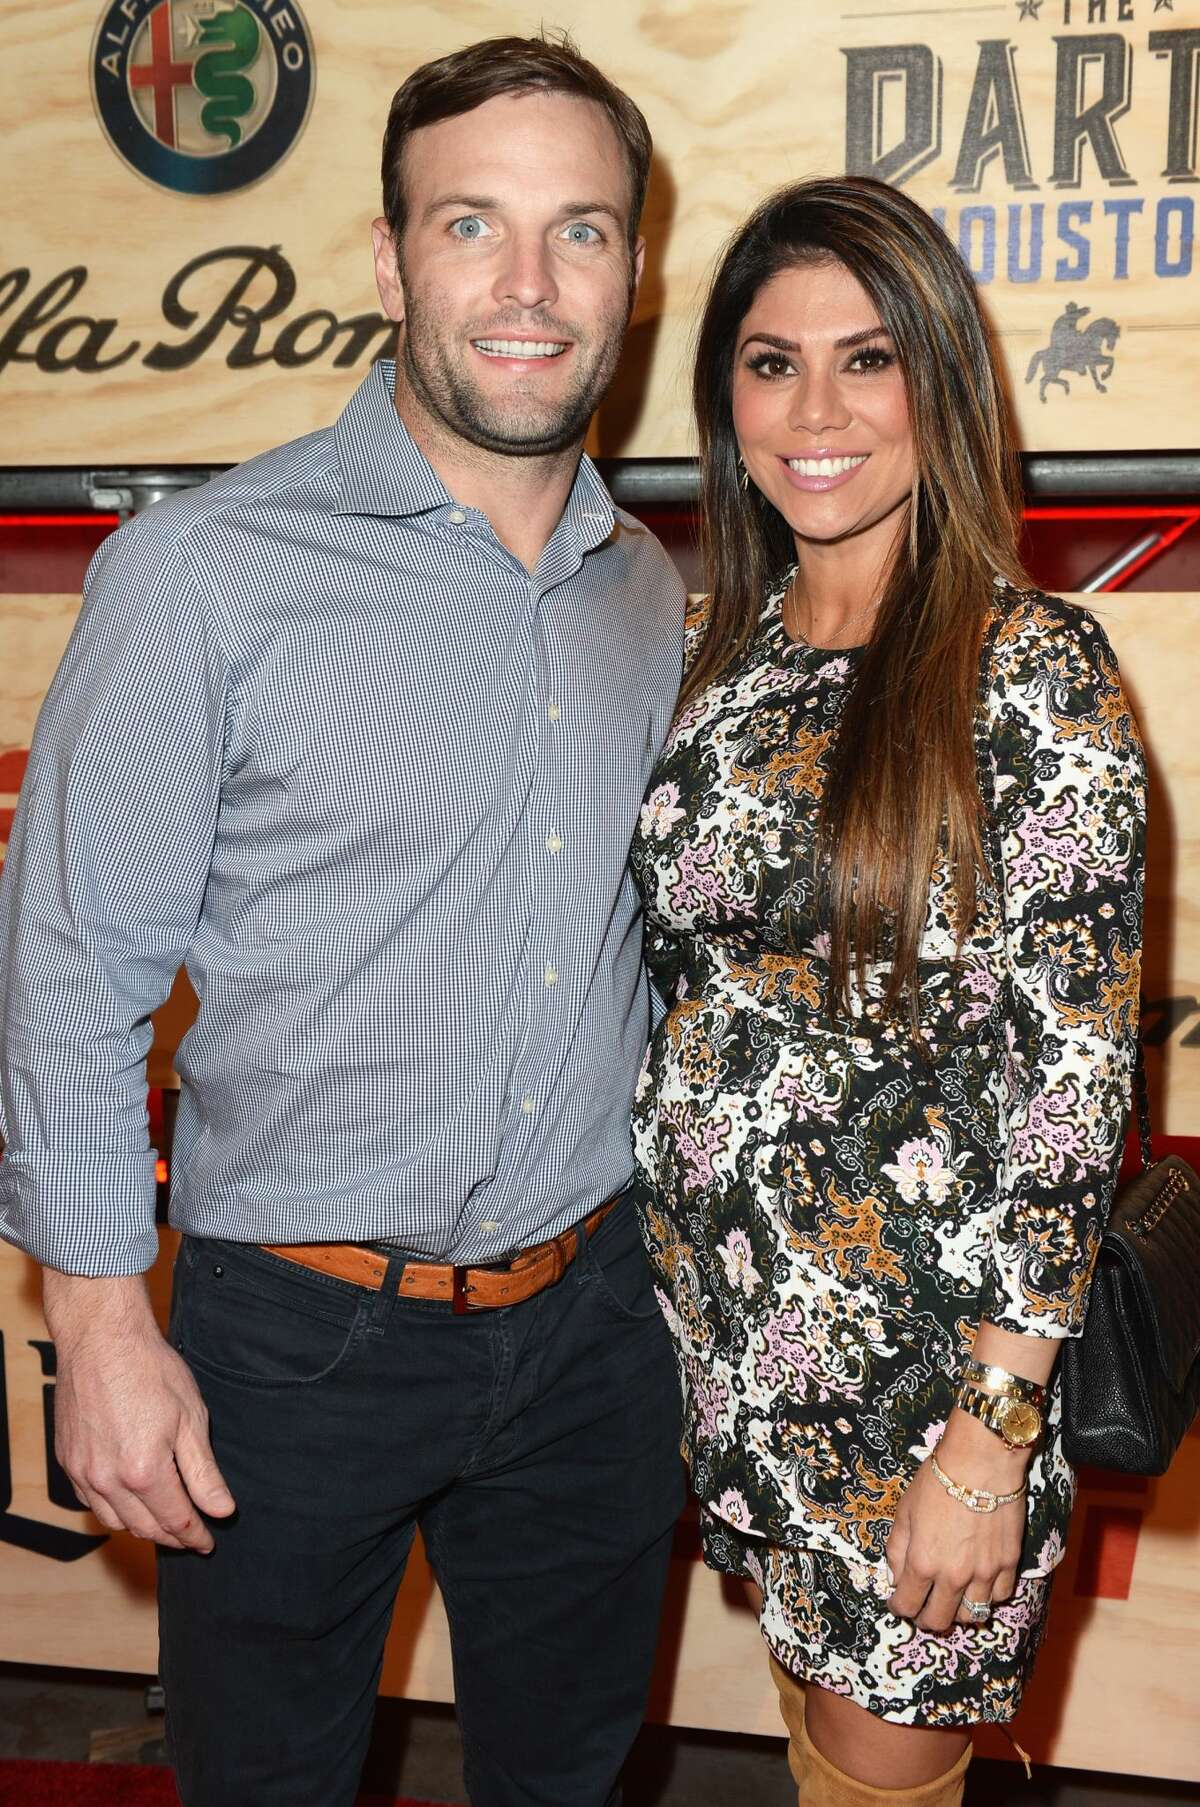 HOUSTON, TX - FEBRUARY 03: NFL player Wes Welker (L) and Anna Burns attend the 13th Annual ESPN The Party on February 3, 2017 in Houston, Texas. (Photo by Gustavo Caballero/Getty Images for ESPN)